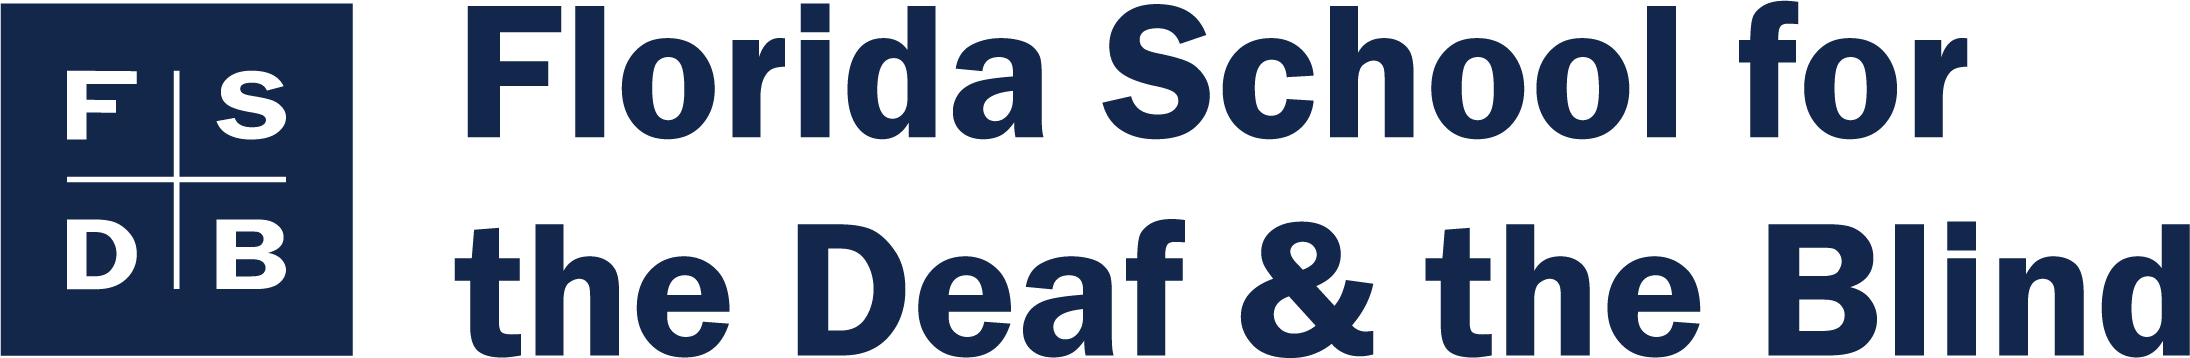 florida school for the deaf and blind logo